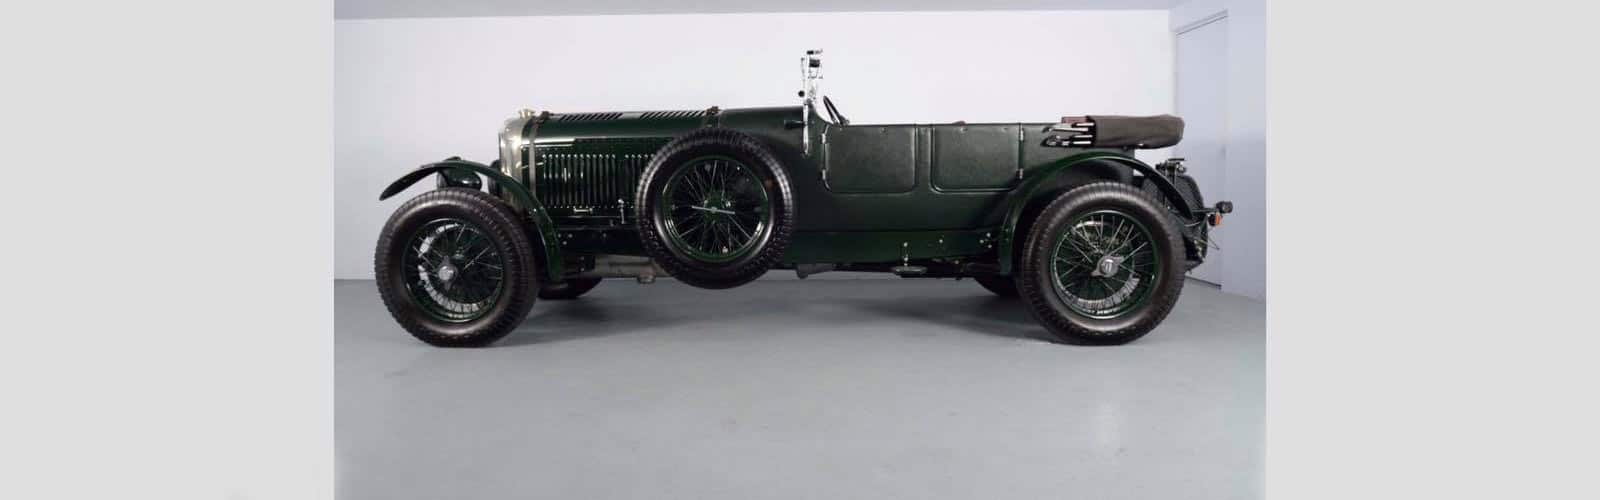 WillShip NZ HALF MILLION DOLLAR 1930 BENTLEY Image